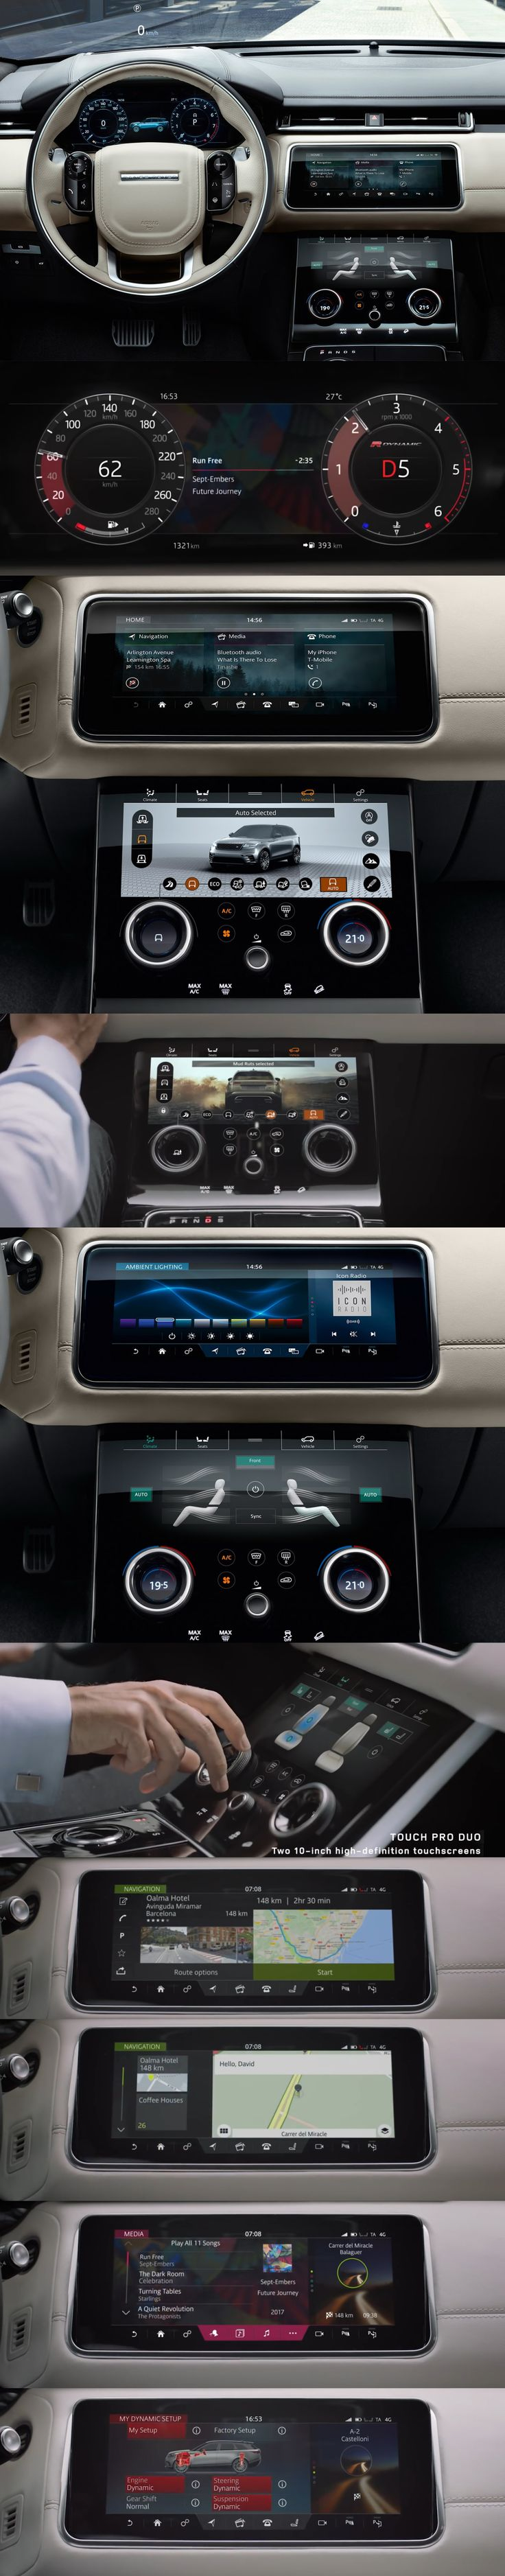 Land Rover // Range VELAR UX/UI design // Cluster 12'' HD + 2x10'' Central display // 2017